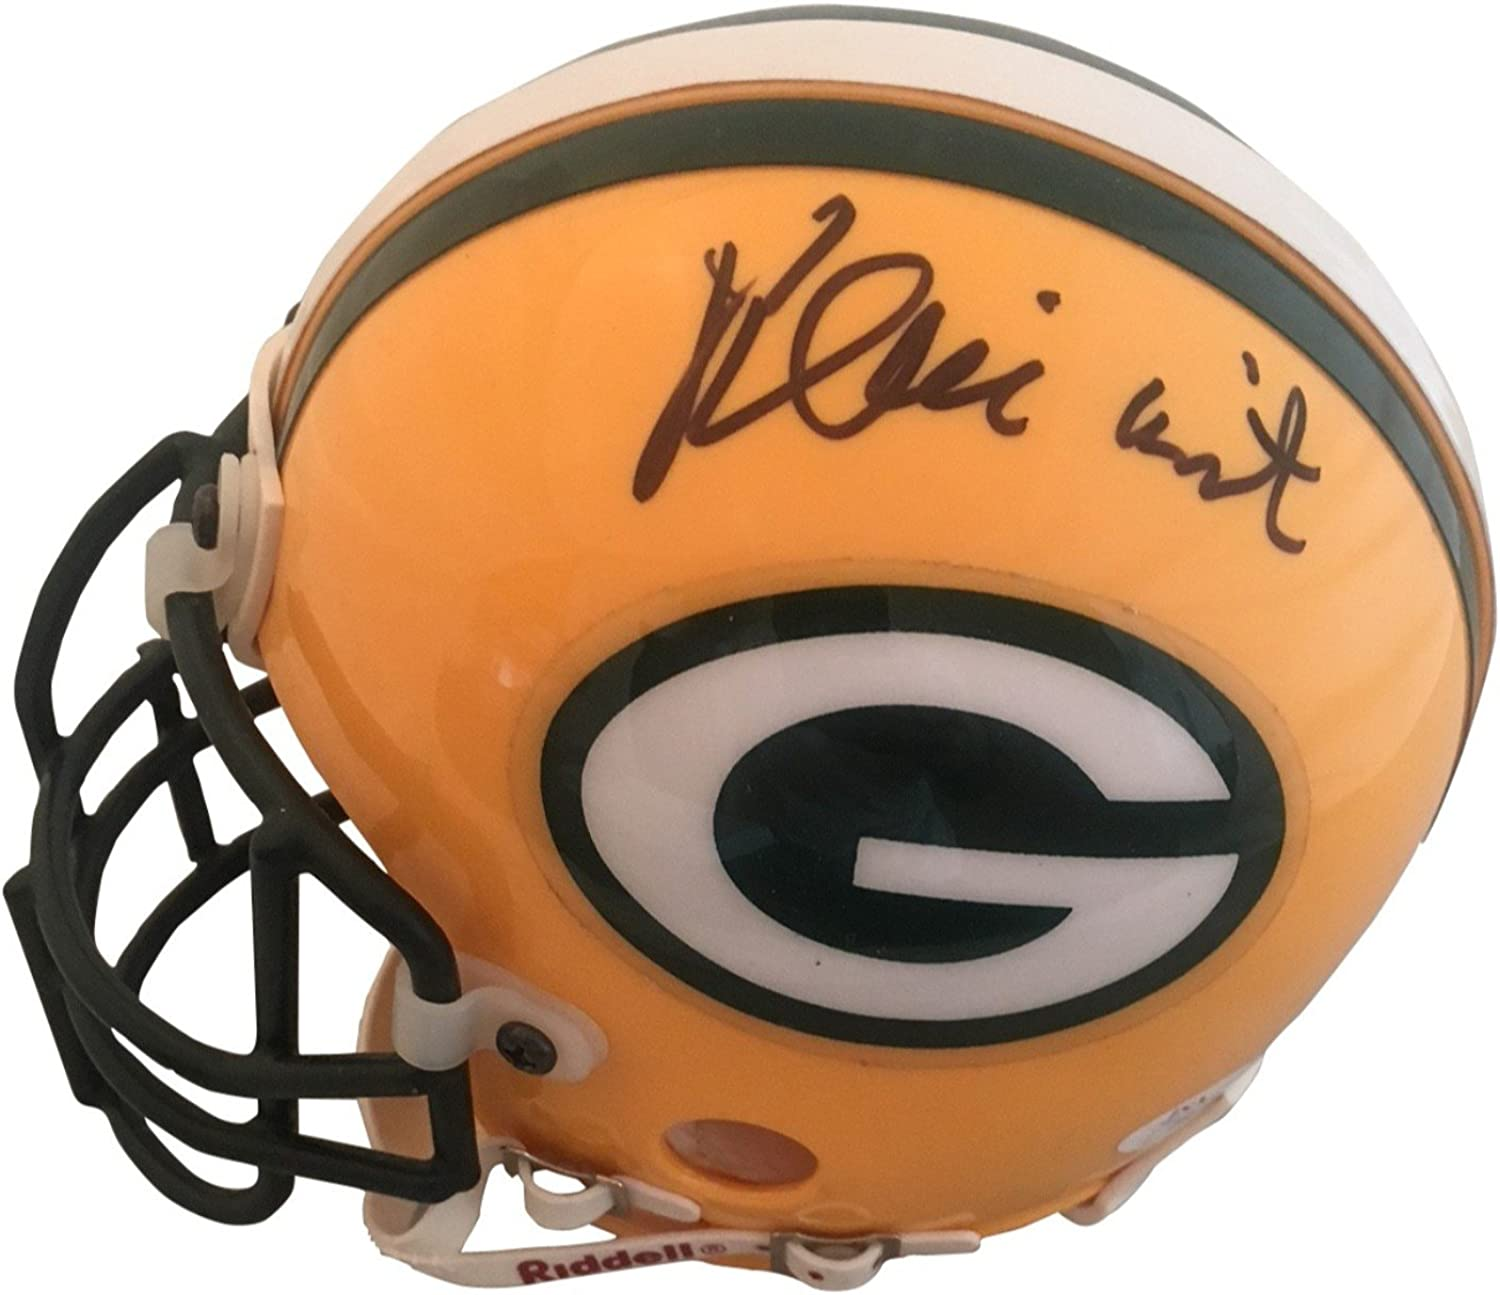 Reggie White Autographed Green Bay Packers Signed Football Mini Helmet JSA COA